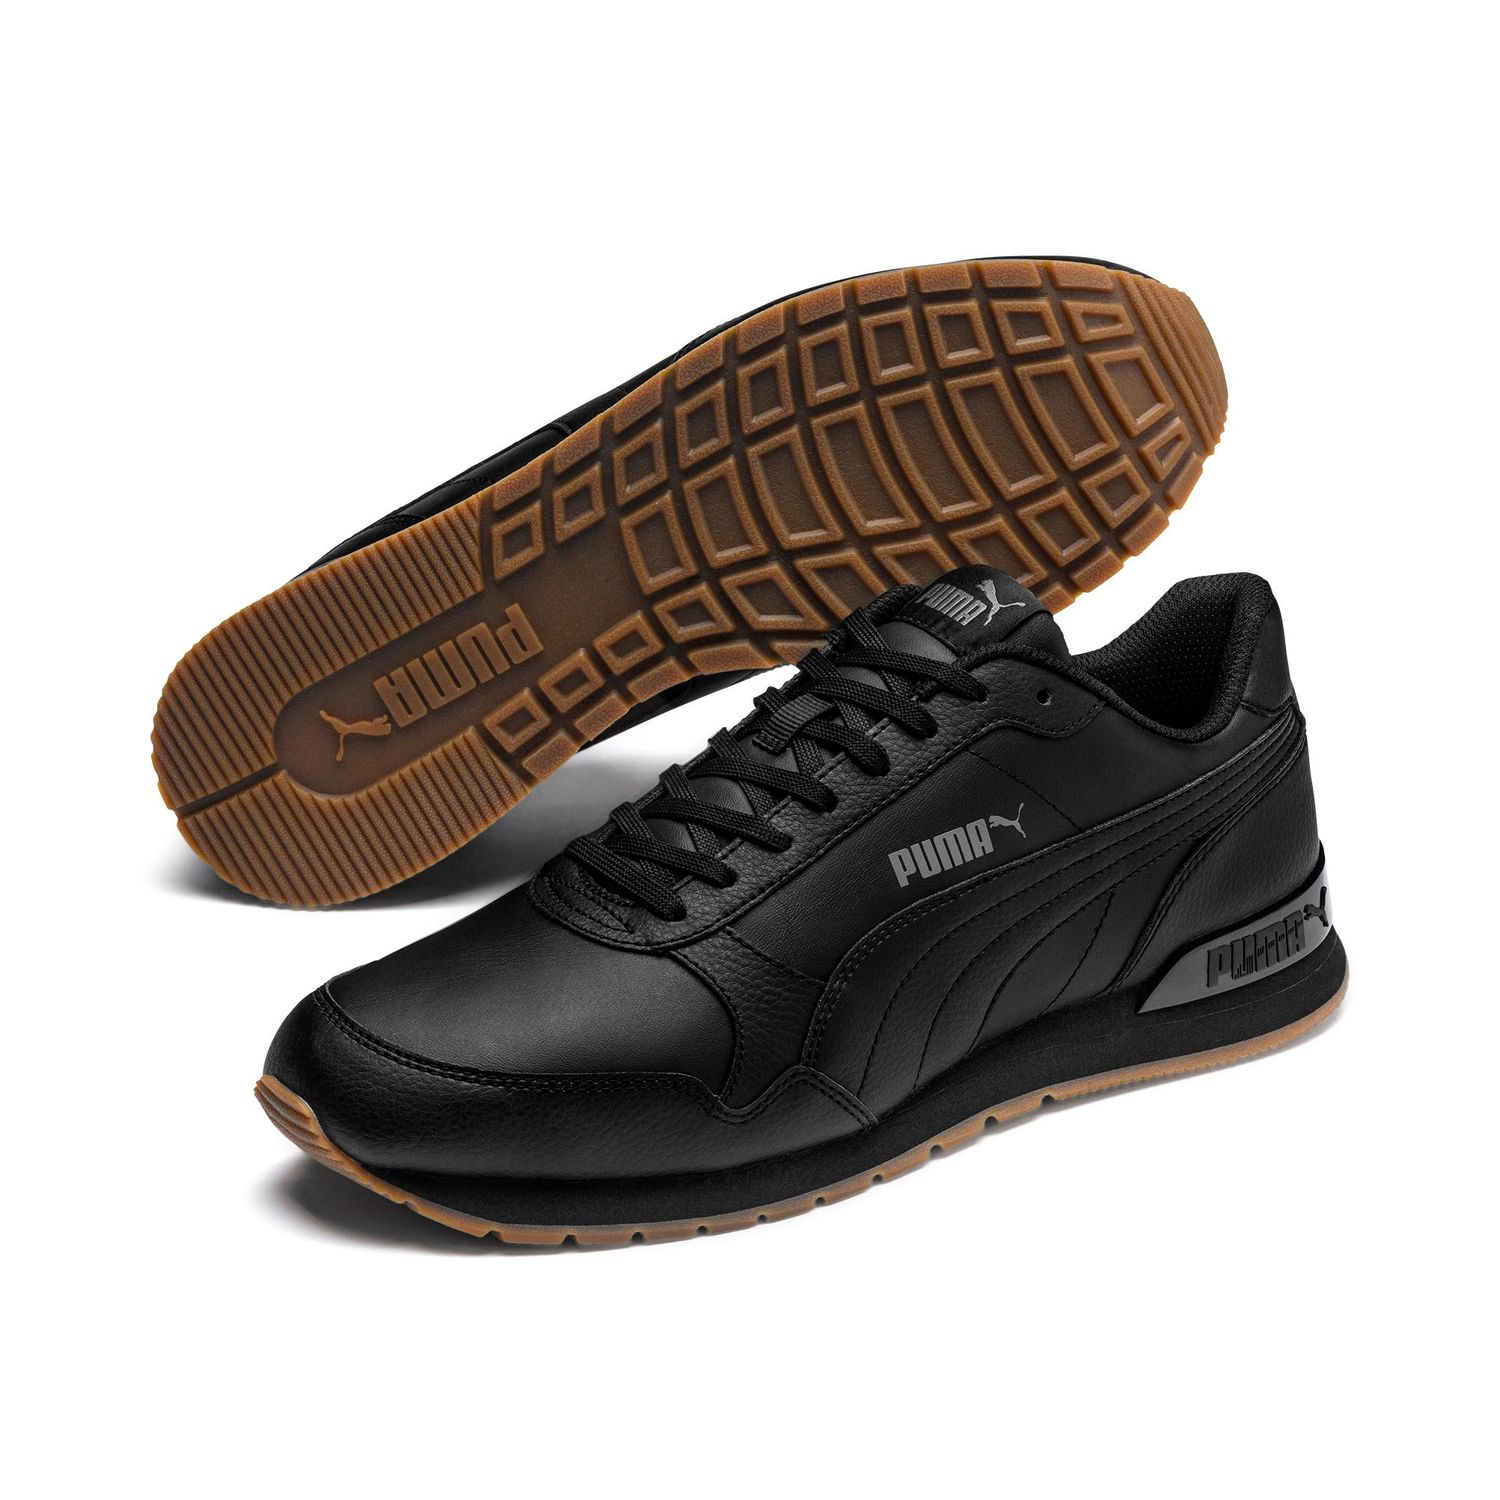 Details about Puma st Runner v2 Full L Unisex Trainers Shoes Leather 365277  Black Castlerock